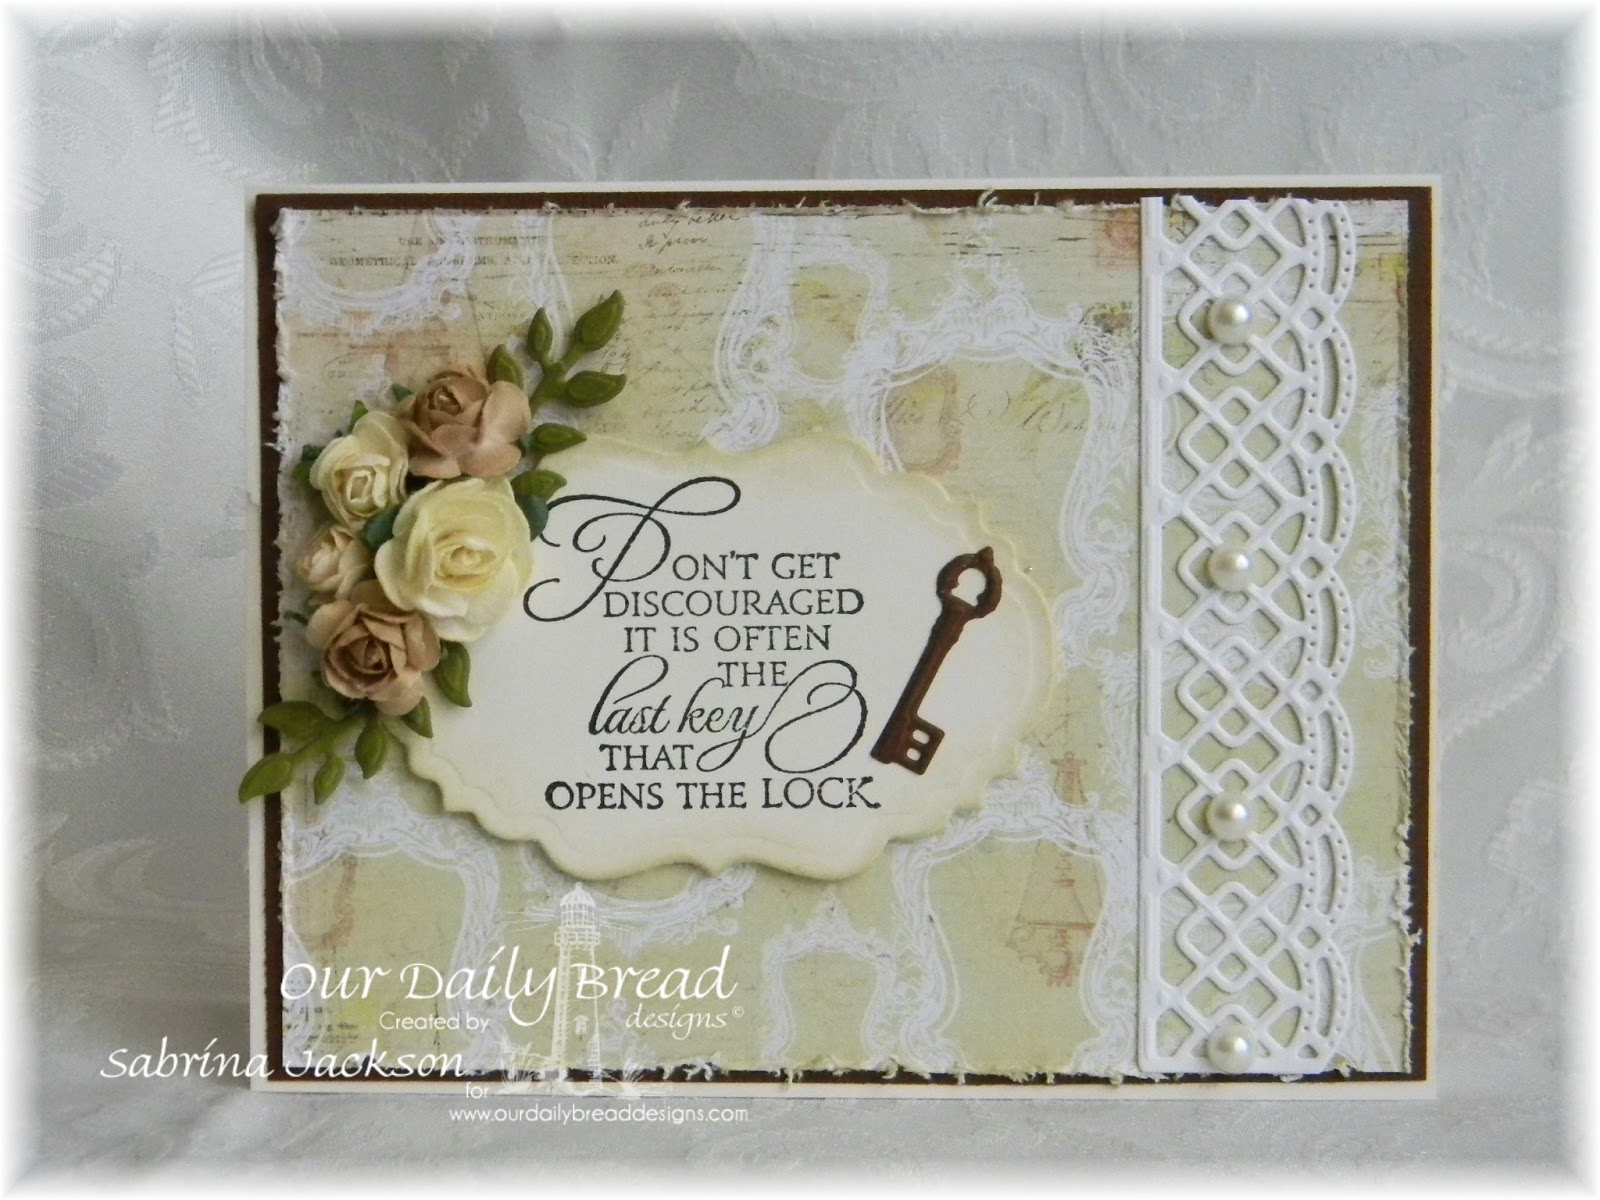 Stamps - Our Daily Bread Designs Key to Heaven, ODBD Custom Vintage Labels Die, ODBD Custom Beautiful Borders Dies, ODBD Custom Fancy Foliage Dies